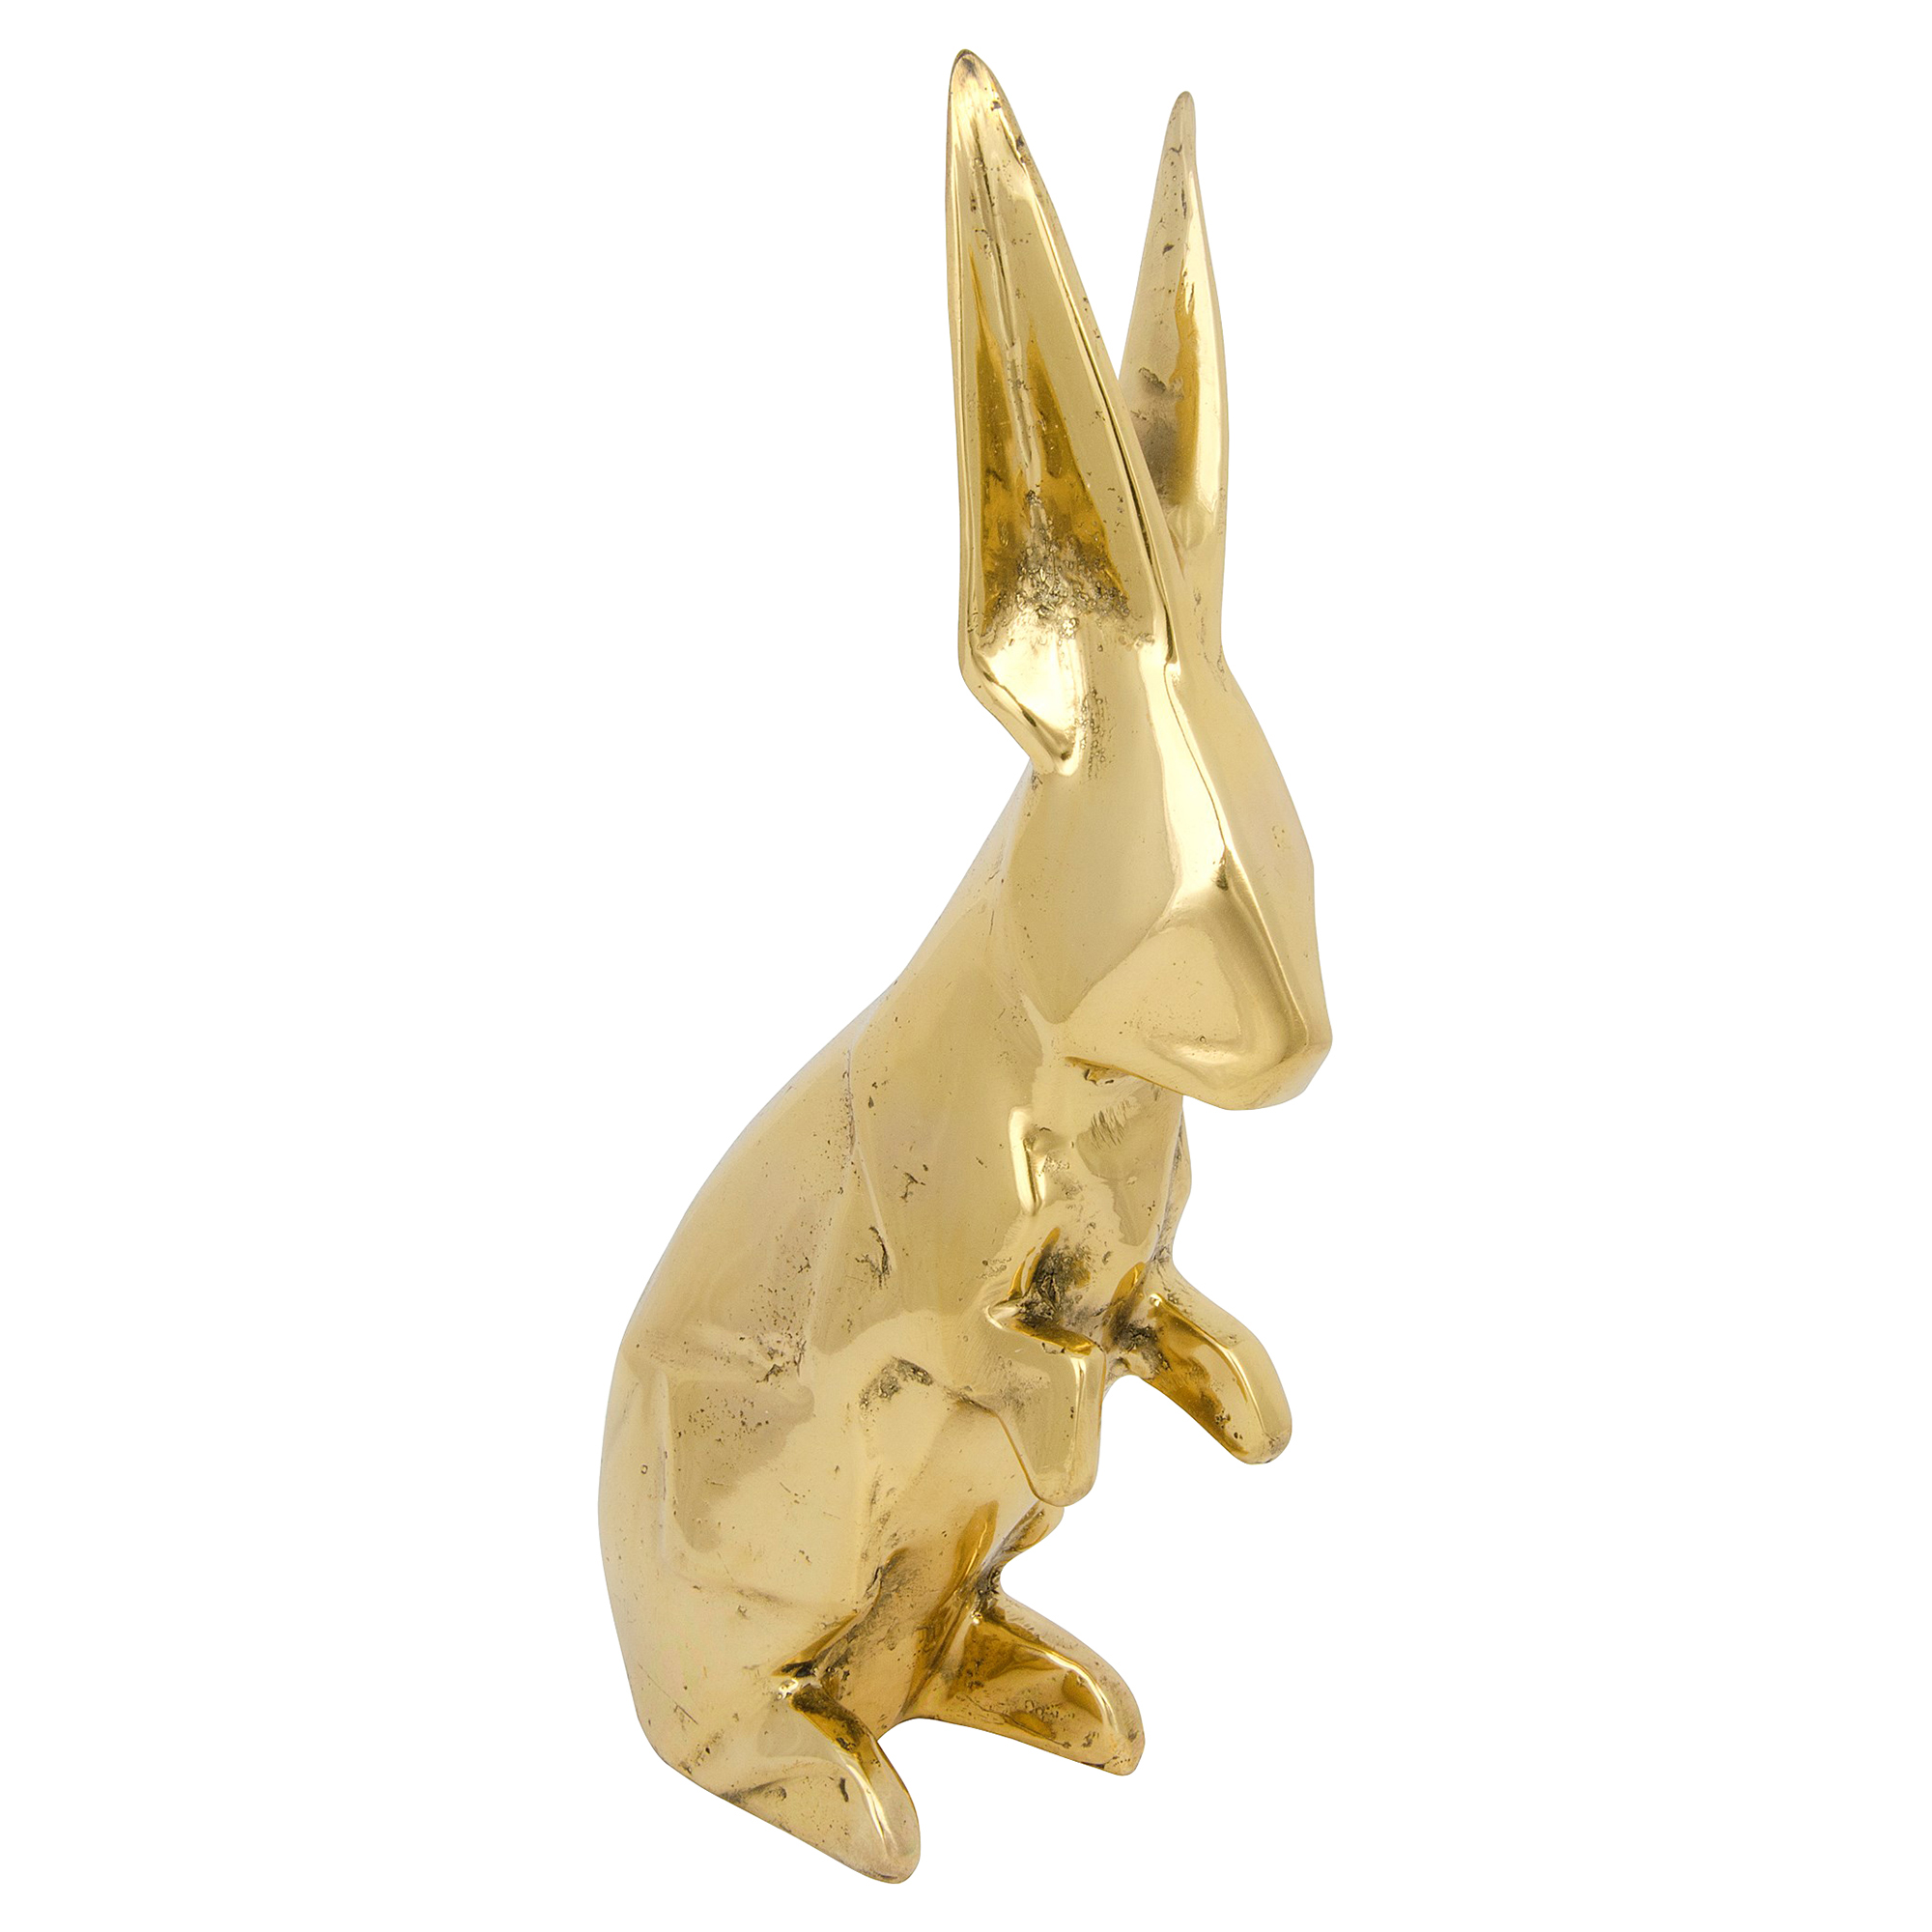 Bunny Rabbit Antique Brass Sculpture